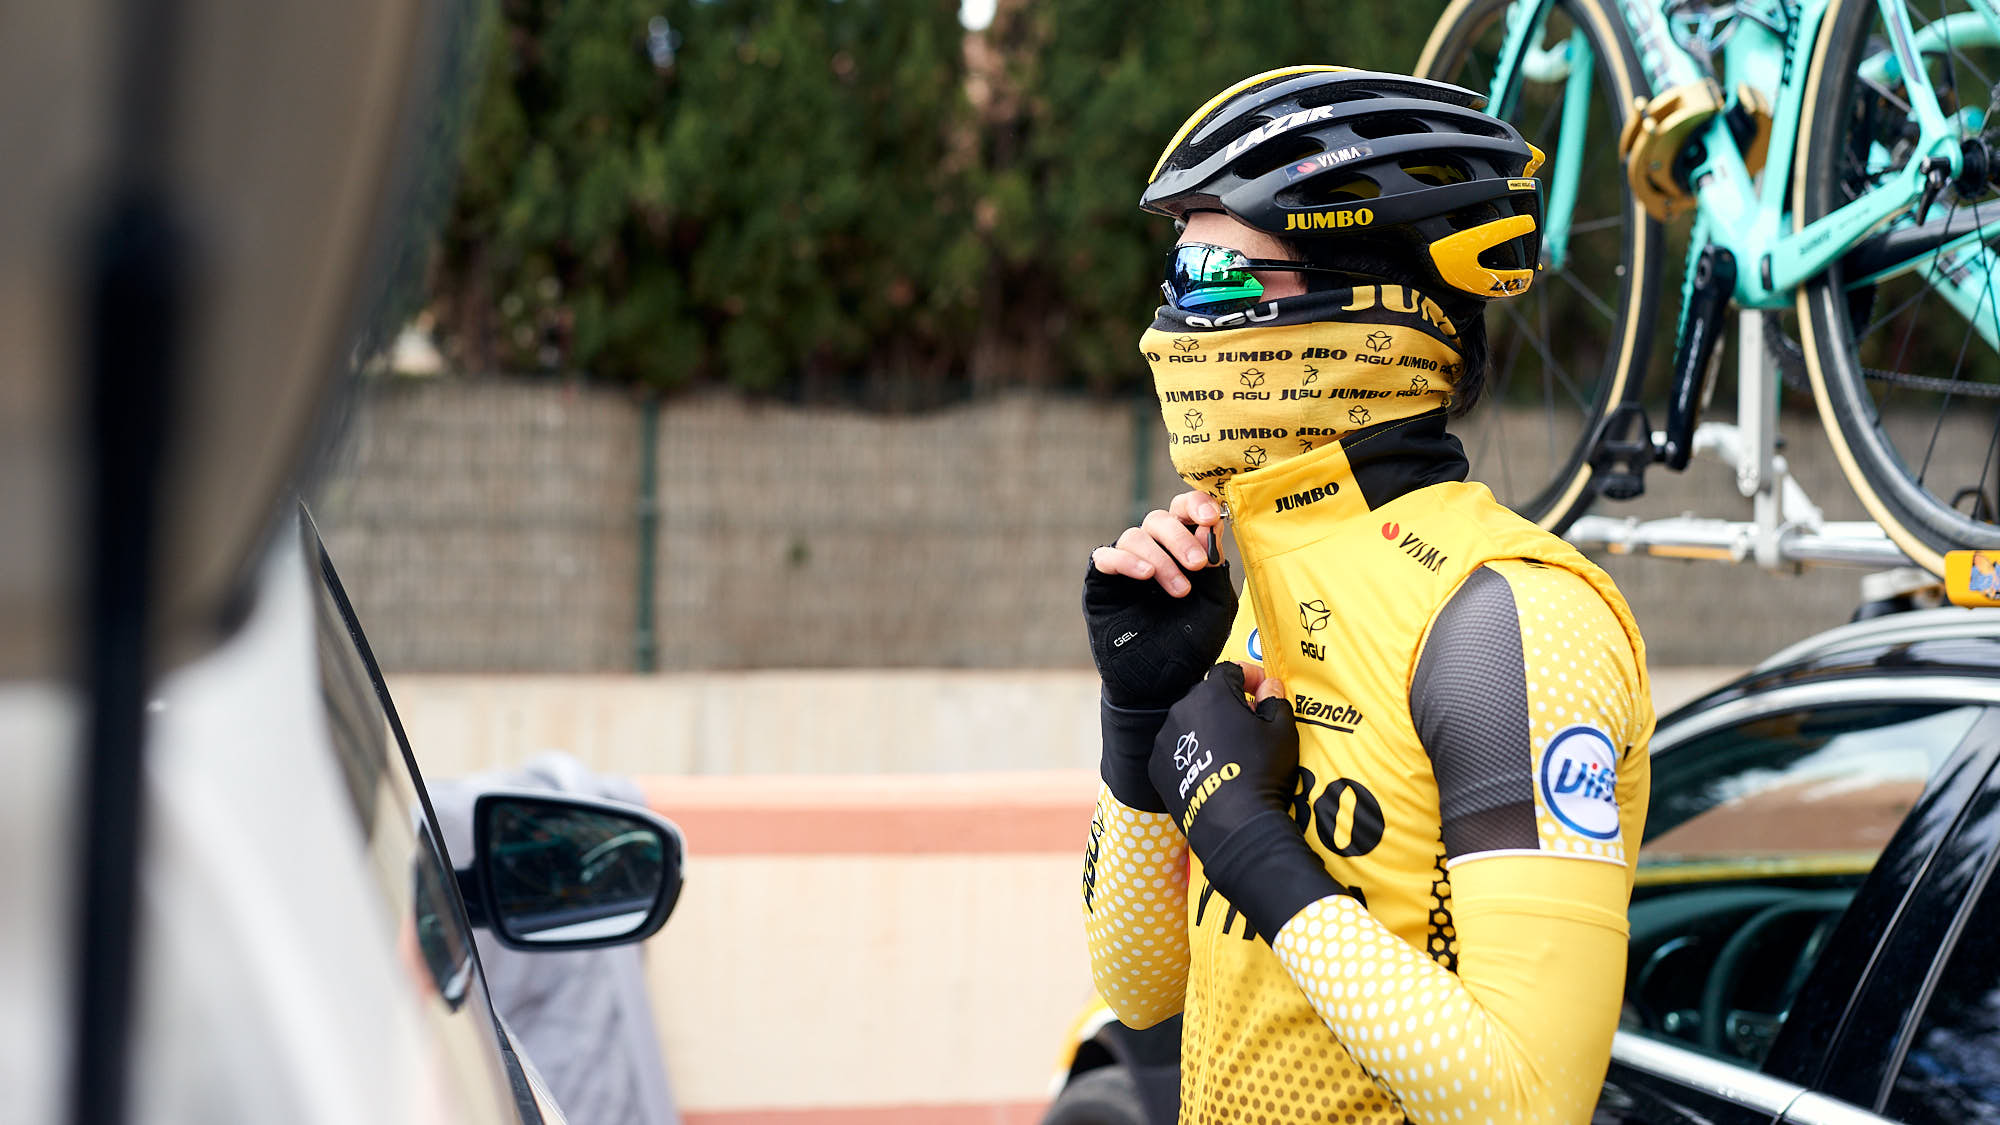 Jumbo-Visma cyclist Primoz Roglic getting dressed